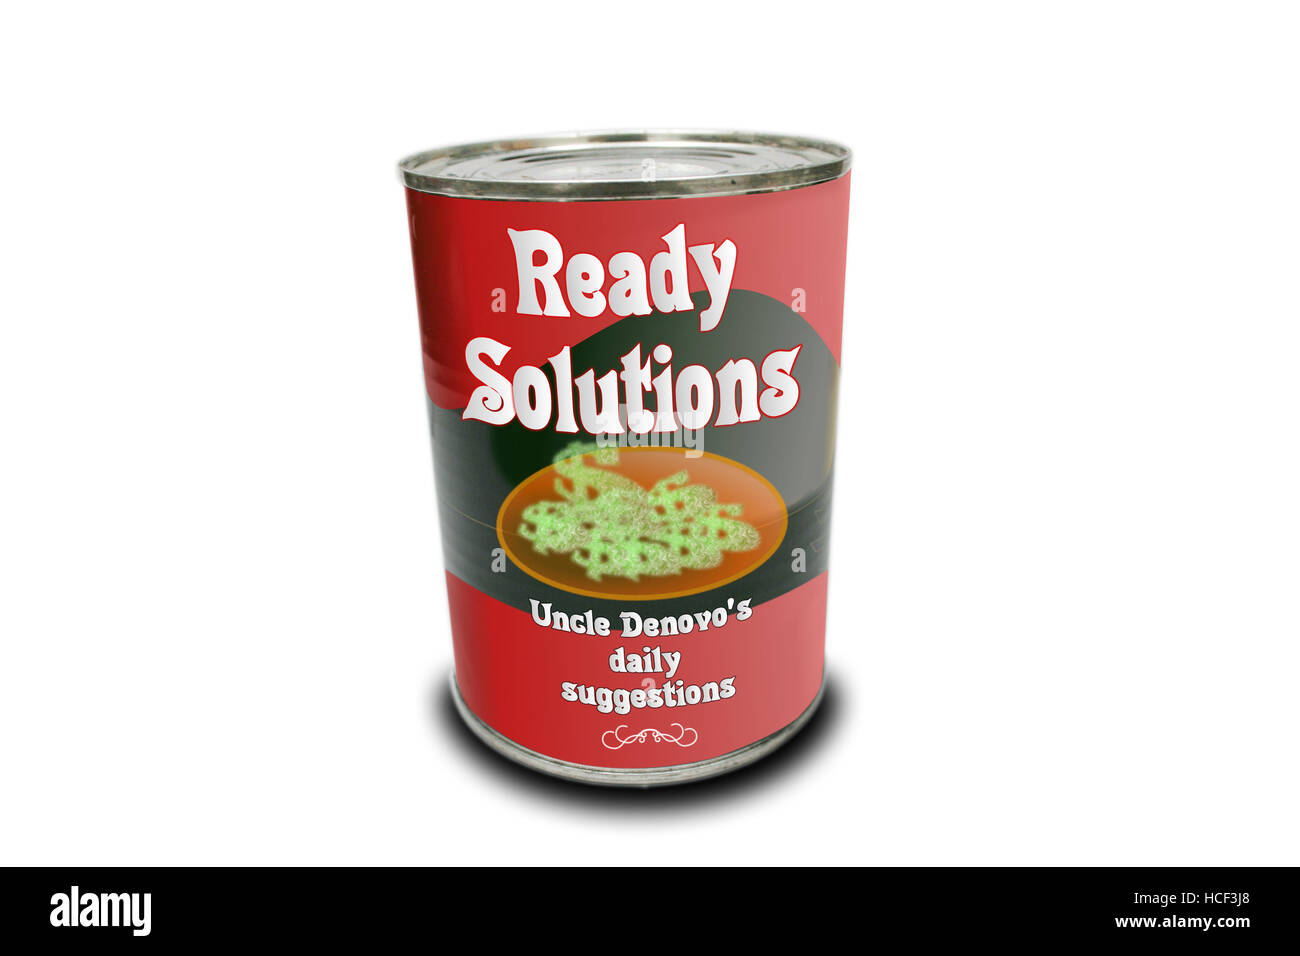 A can full of new solutions and ideas - Stock Image